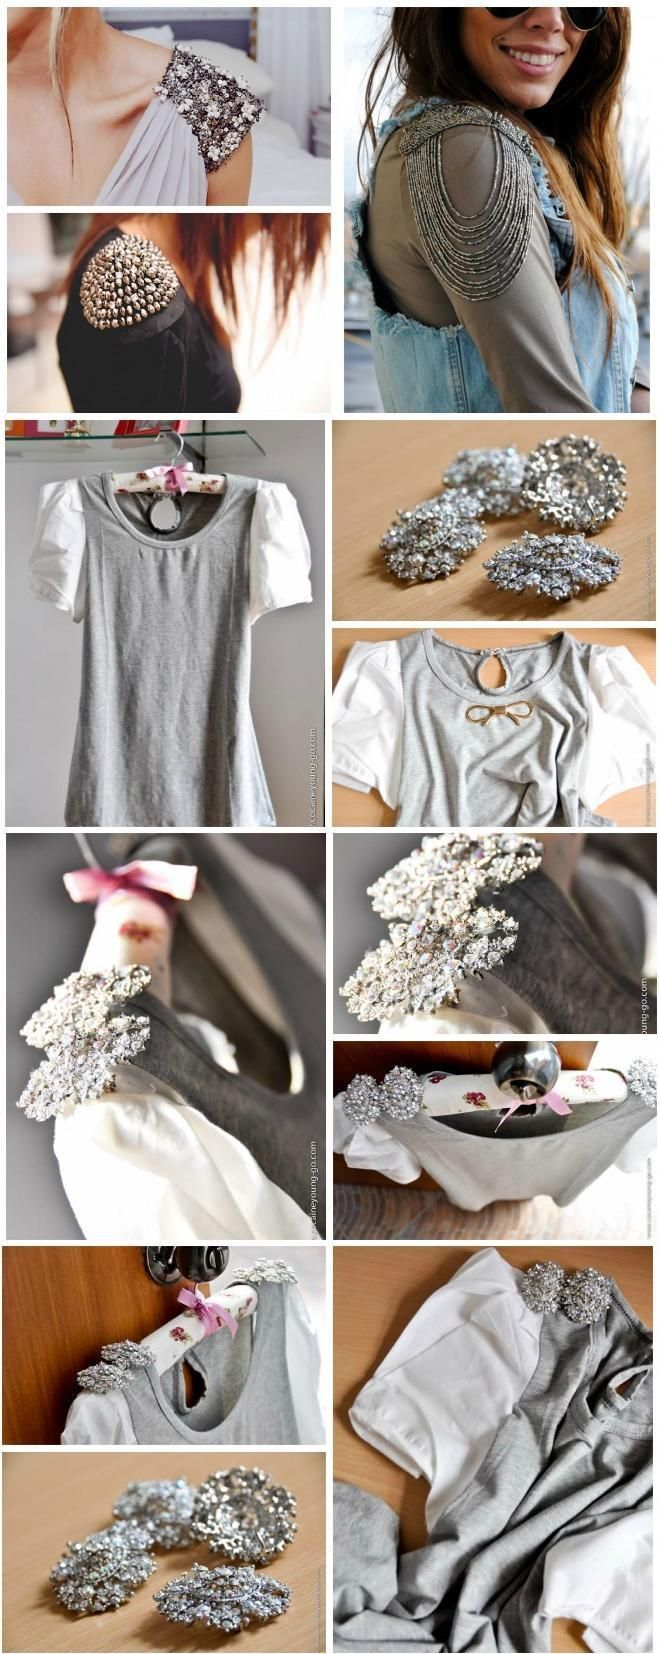 Glam Radar | 12 DIY Embellished Outfit Ideas Sleeve embellishment!: Glam Radar | 12 DIY Embellished Outfit Ideas Sleeve embellishment!